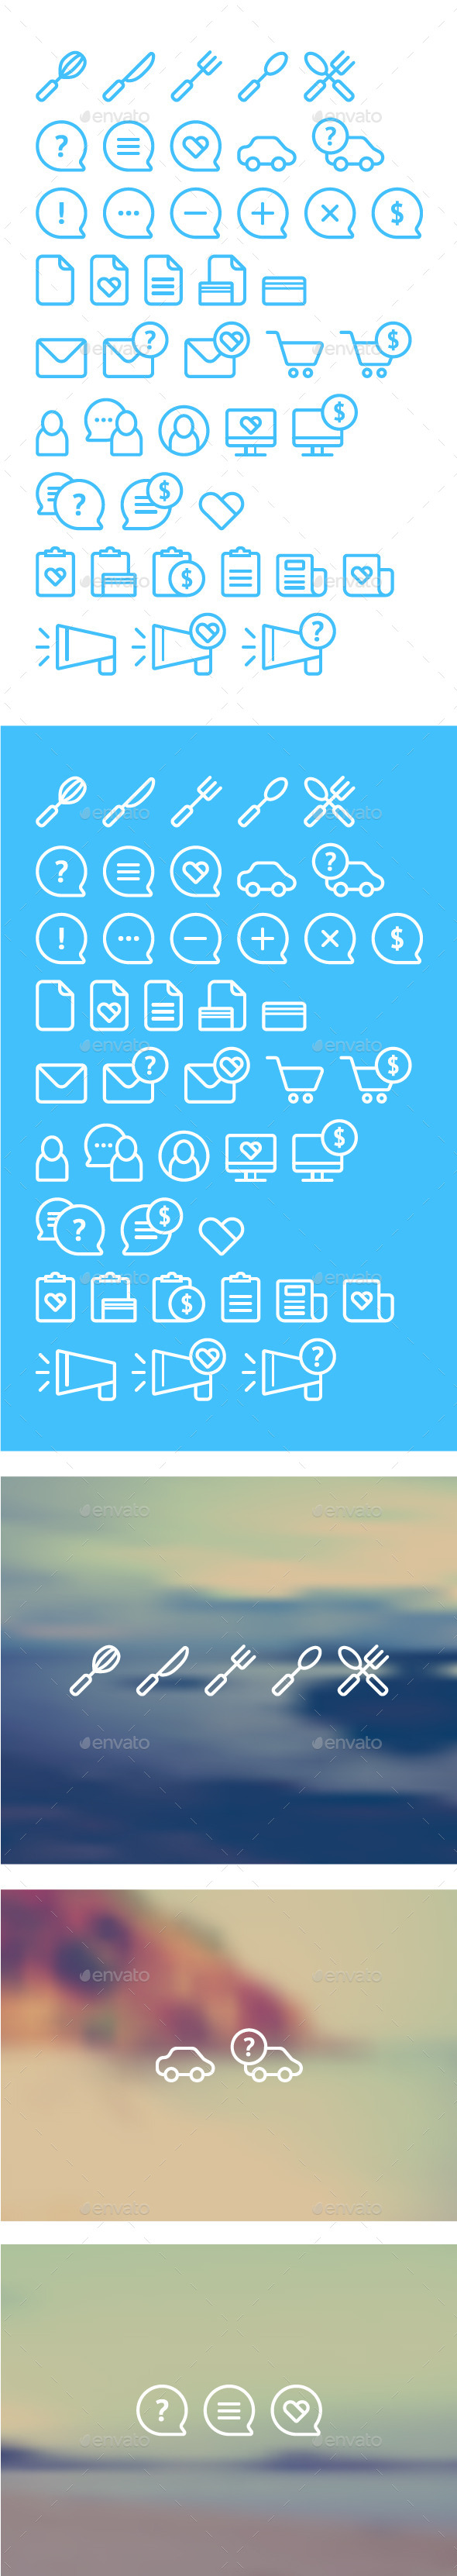 GraphicRiver Cleanse Icons Set on Blurred Background 10311355